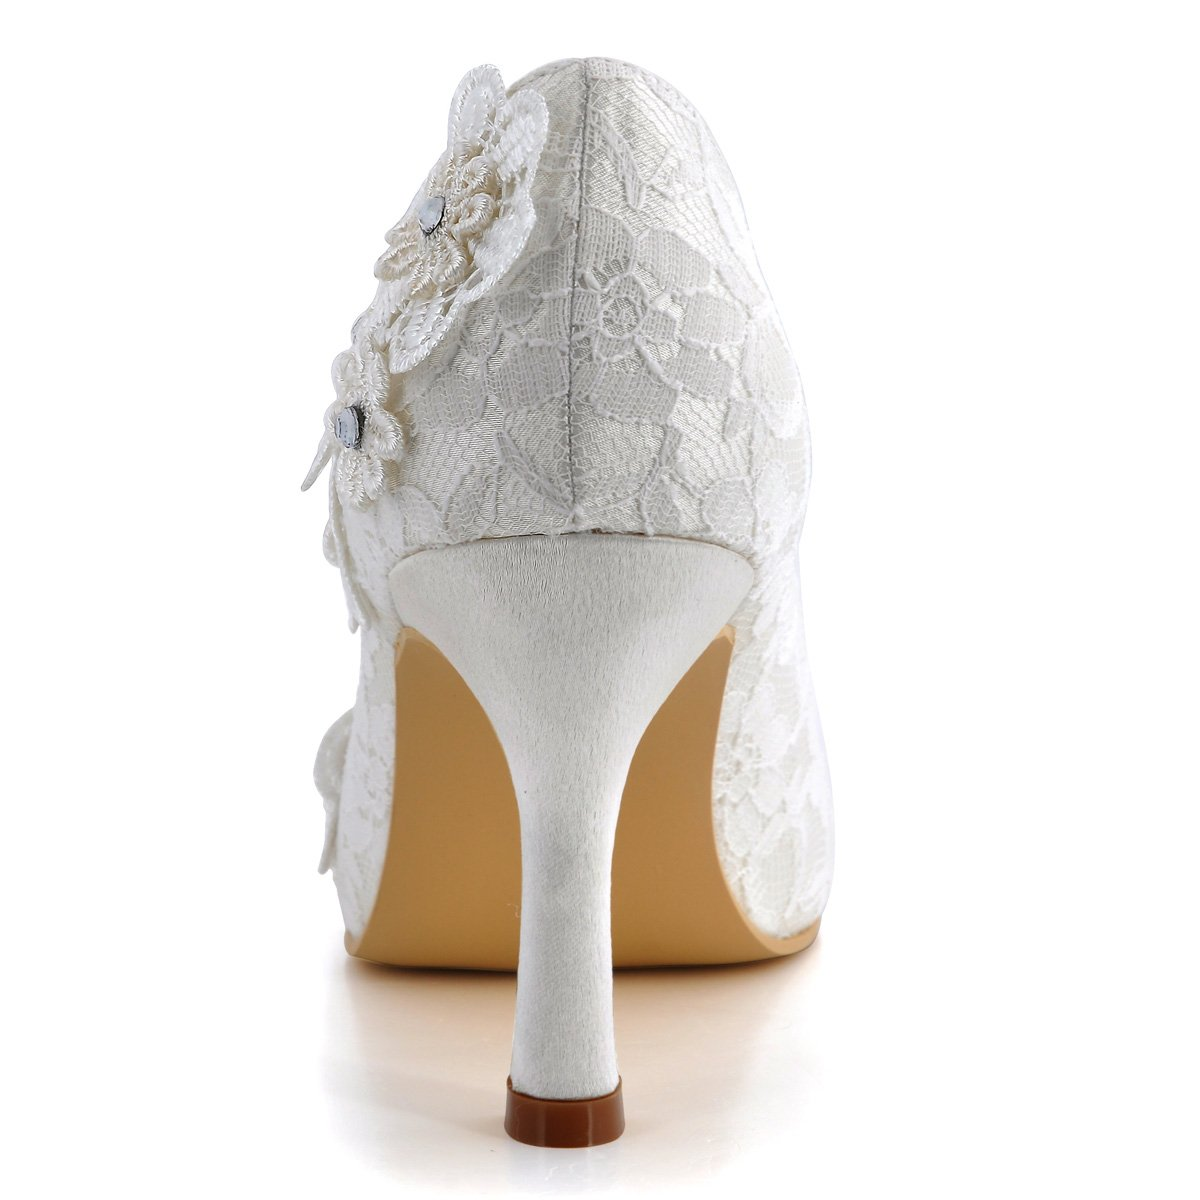 ElegantPark Women Vintage Closed Toe Pumps High Heel Flowers Lace Wedding Bridal Dress Shoes 2